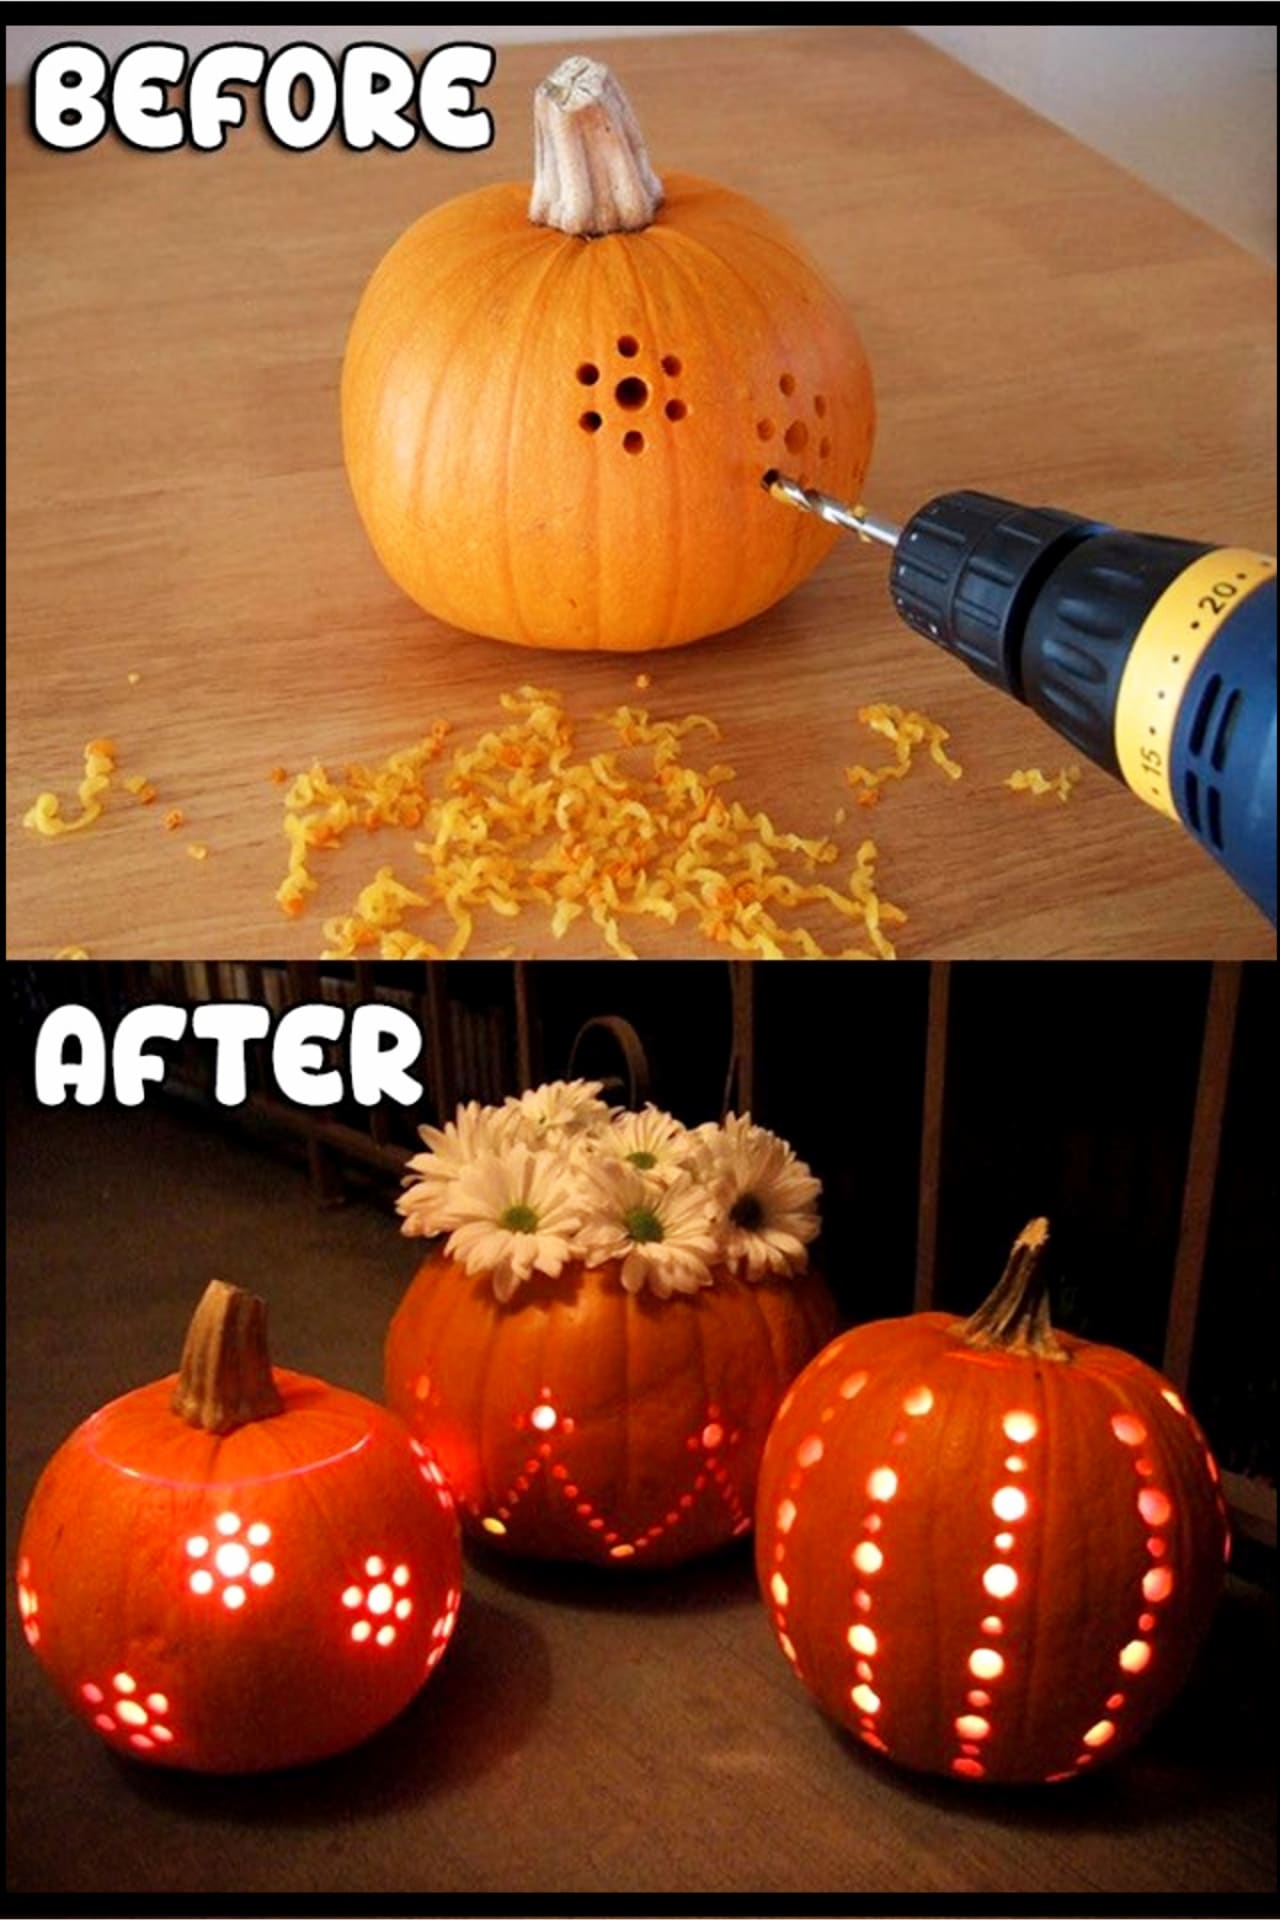 Pumpkin Decorating Ideas - creative ways to decorate pumpkins for Halloween, Thanksgiving or for Fall front porch decorating ideas